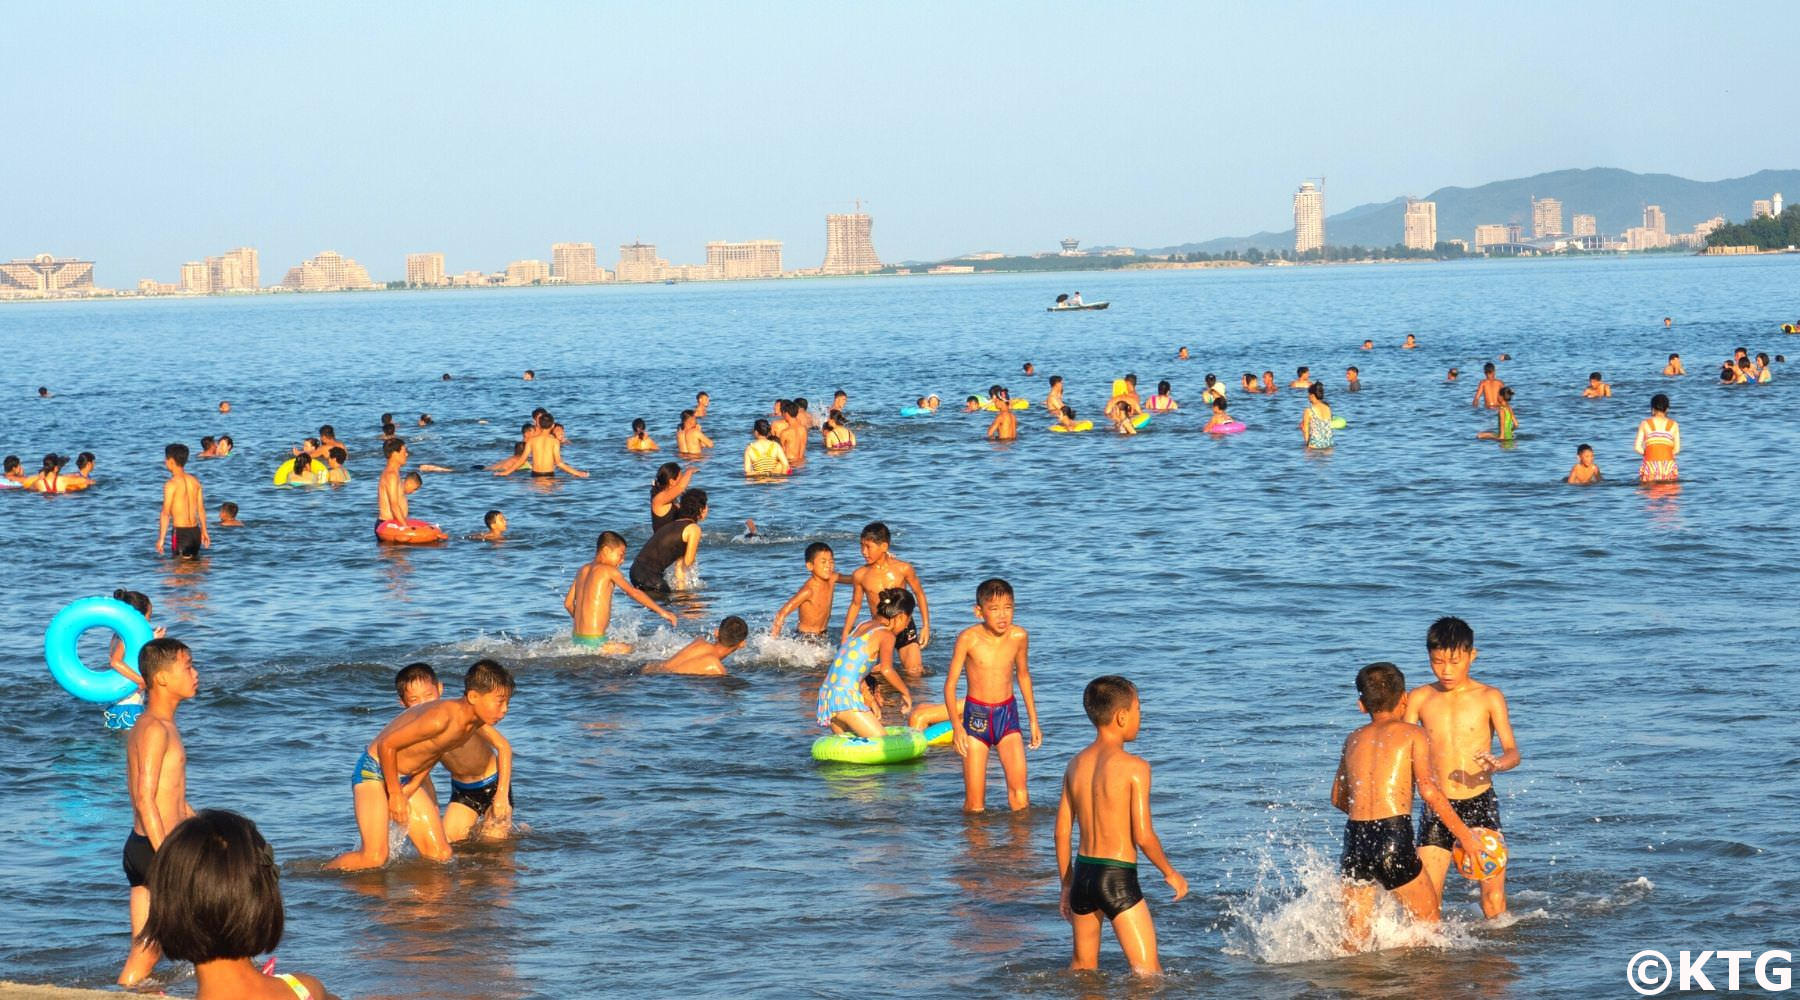 Children having fun at the beach in Wonsan, North Korea. You can see the Wonsan-Kalma project in the background. Trip arranged by KTG Tours